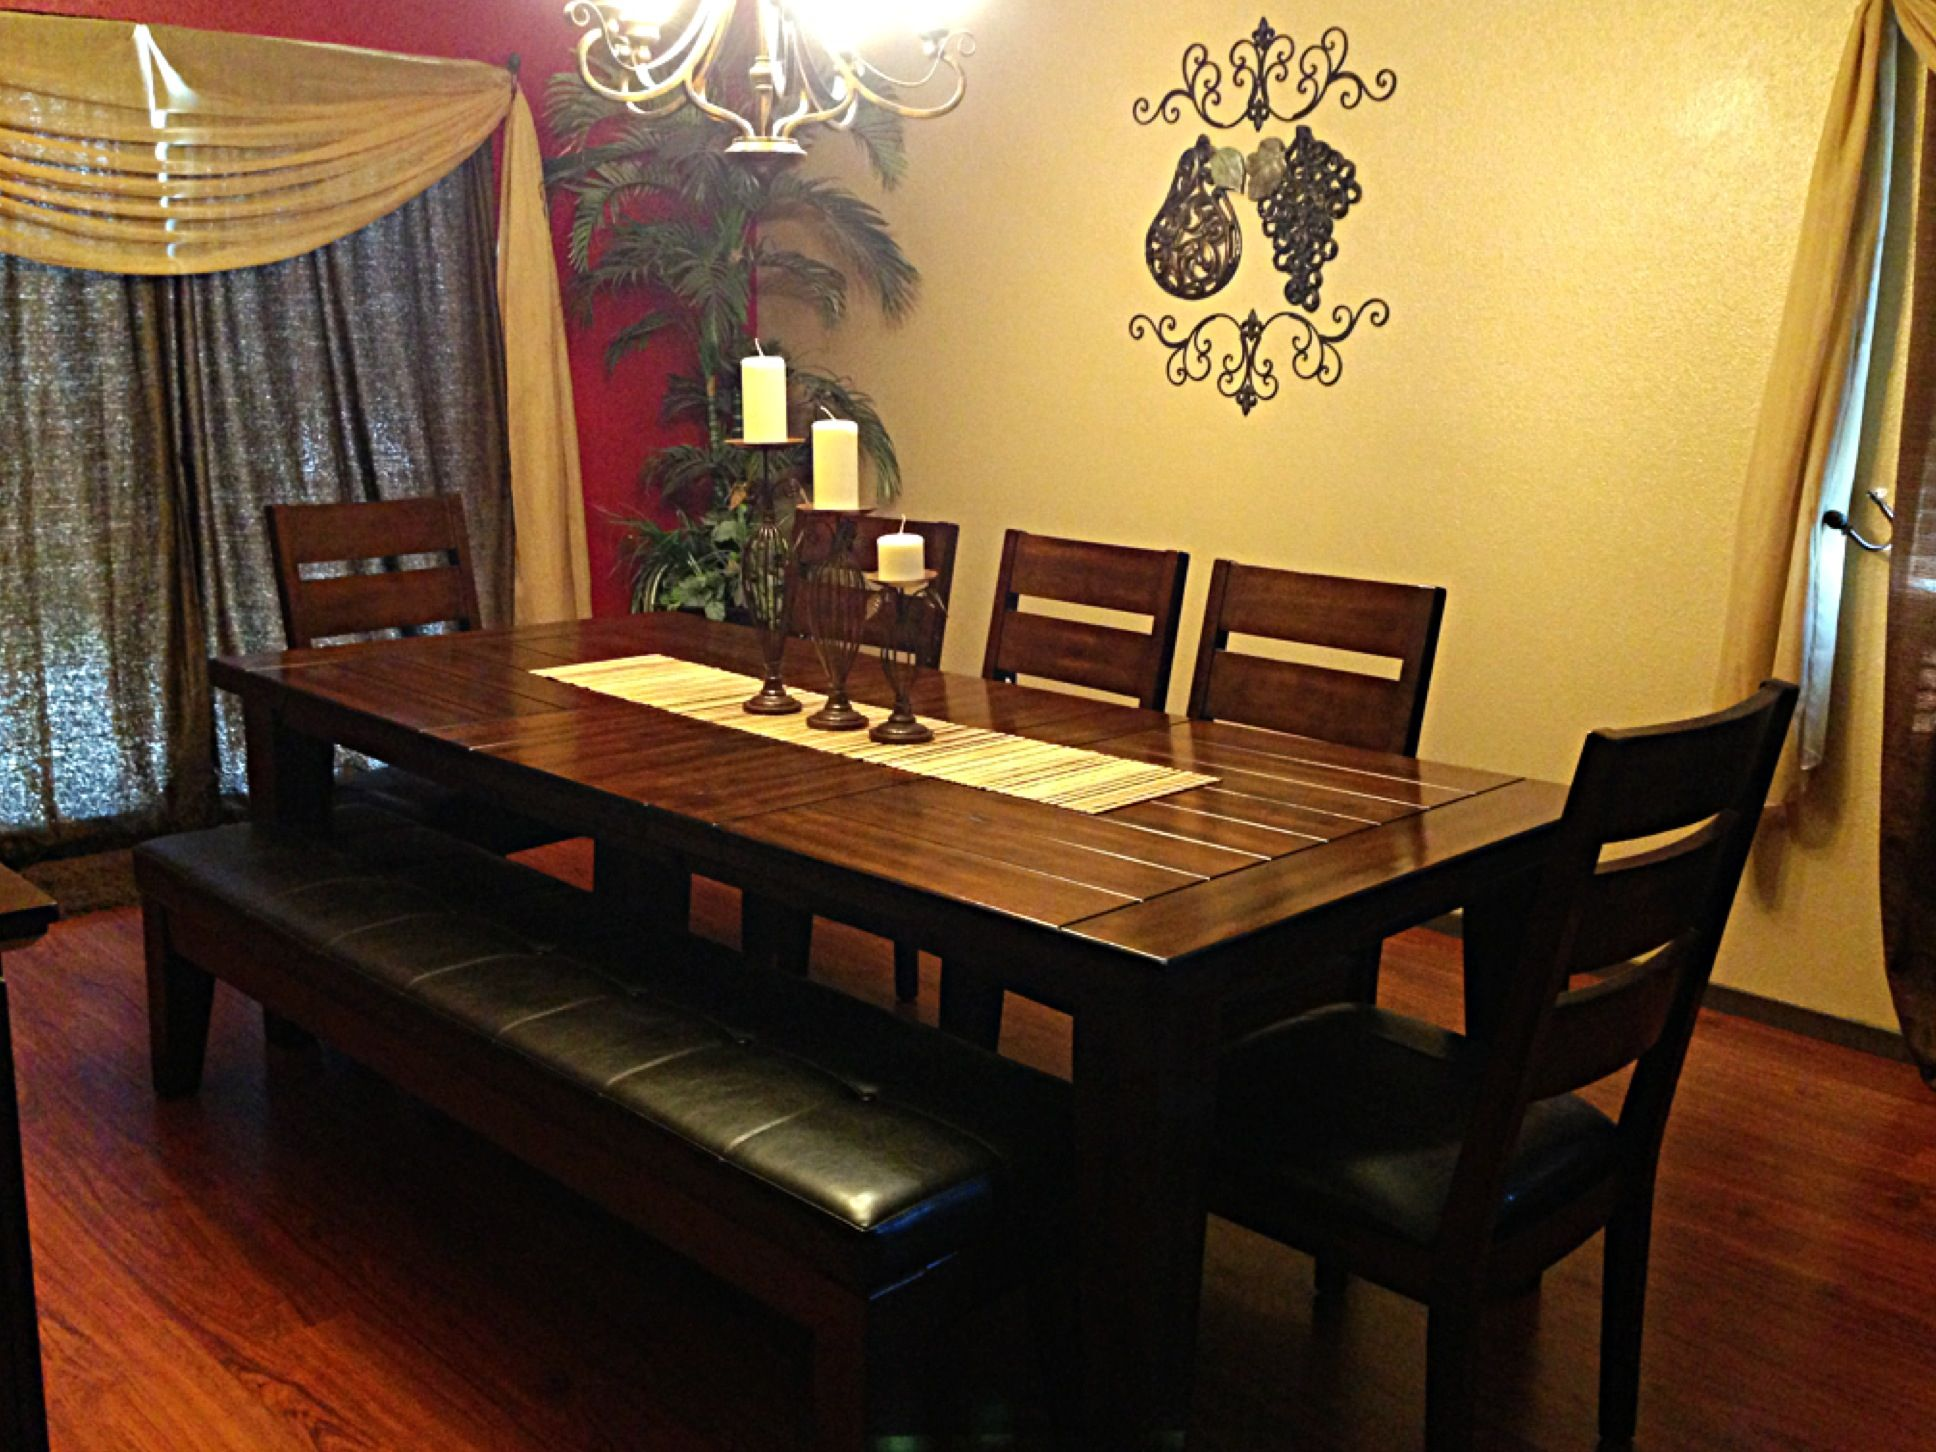 dining room ashley furniture kitchen tables Ashley furniture dining table with Bench candle holders in the middle and iron decor with brown